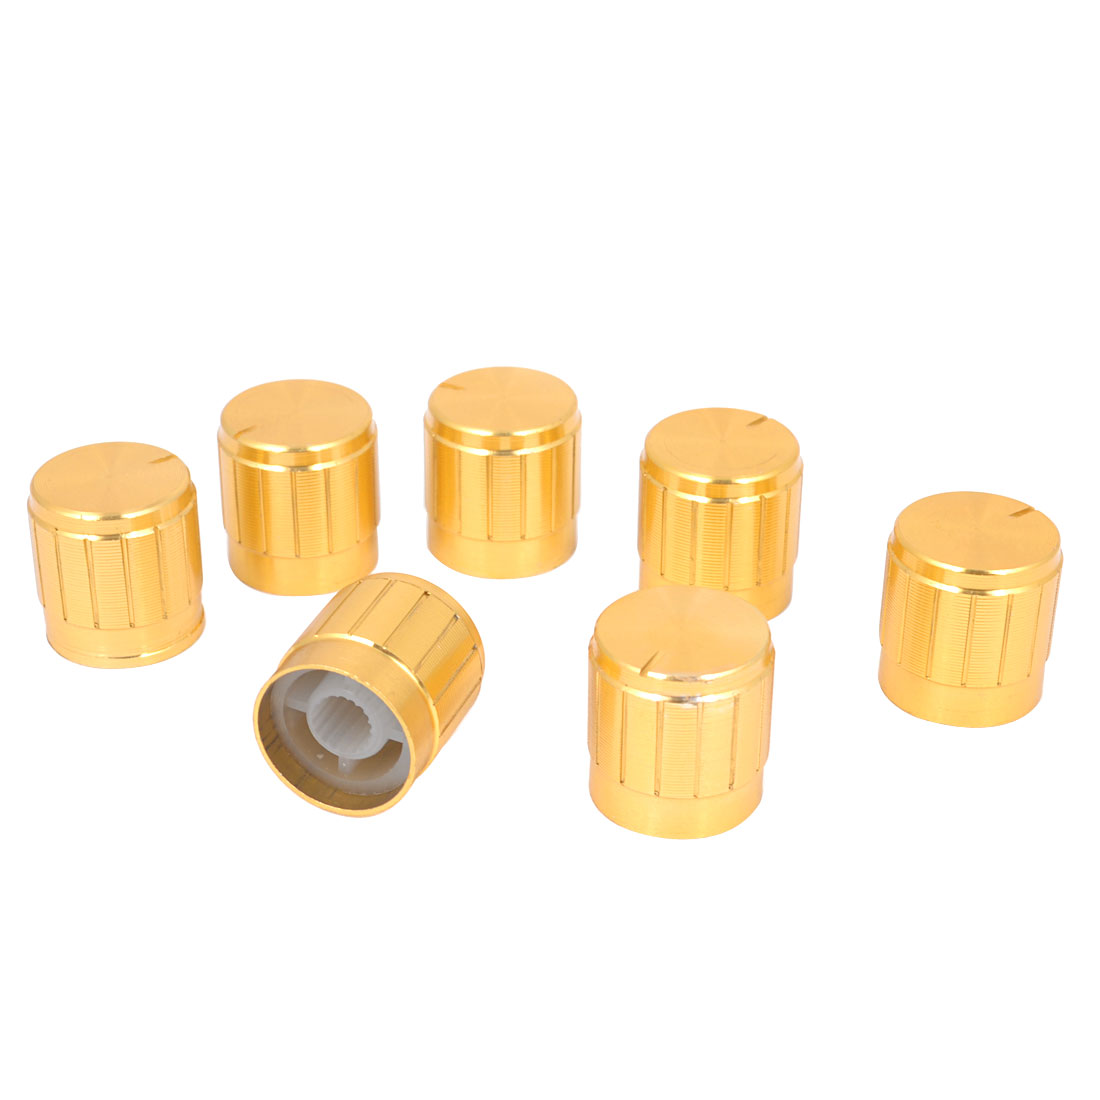 7 Pcs Gold Tone 17mm x 17mm Rotary Potentiometer Knobs Caps